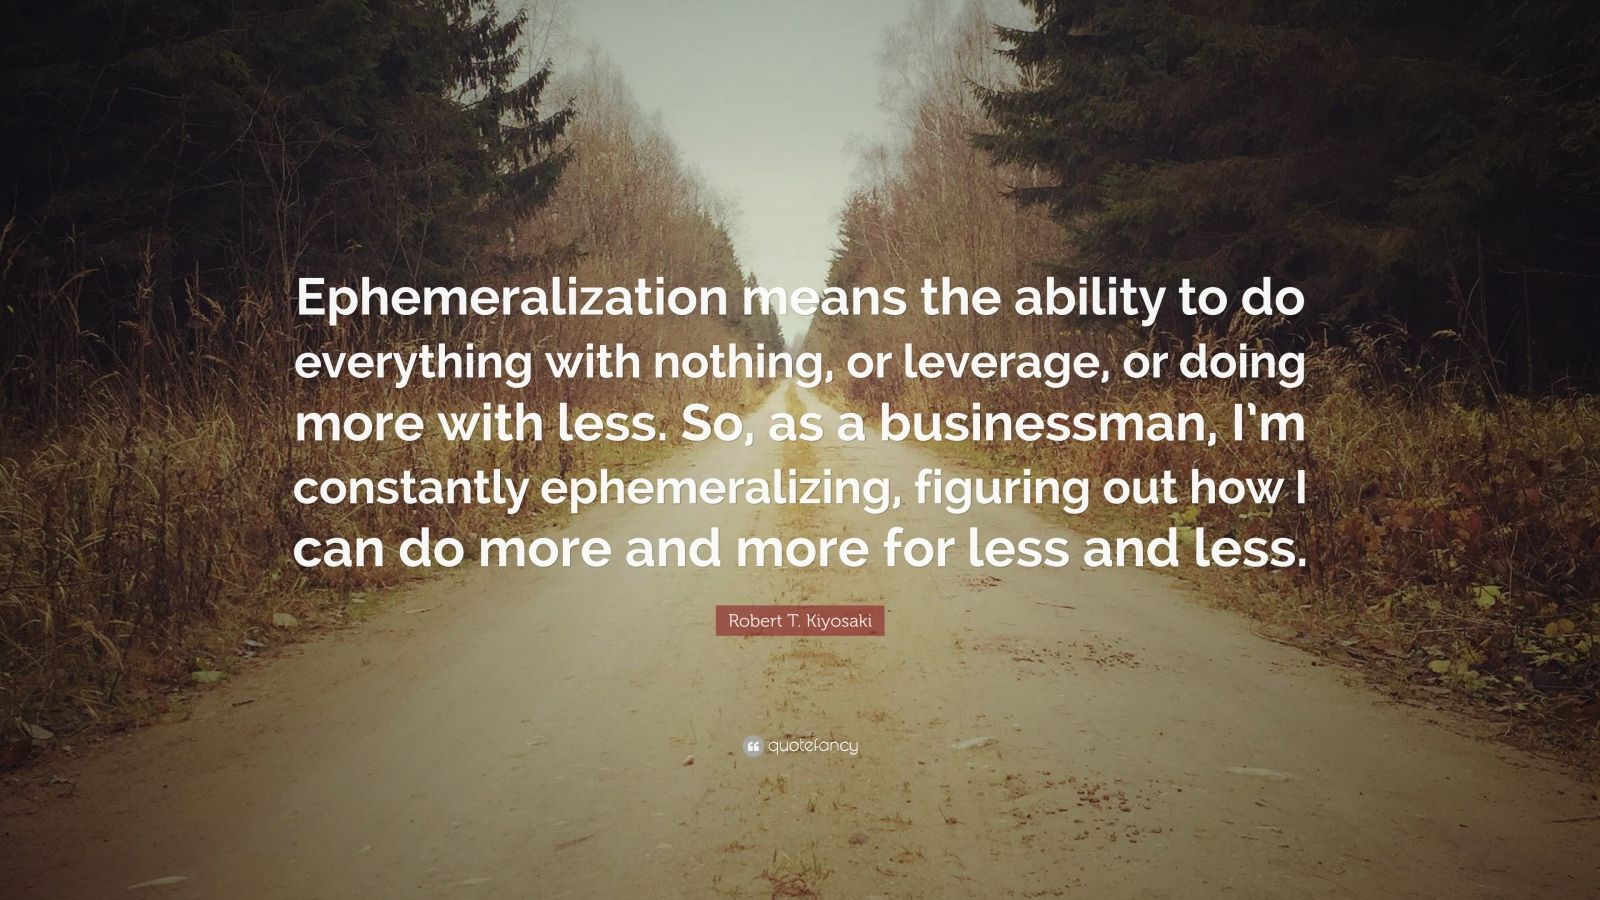 """Robert T. Kiyosaki Quote: """"Ephemeralization means the ability to do everything with nothing, or leverage, or doing more with less. So, as a businessman, I'm constantly ephemeralizing, figuring out how I can do more and more for less and less."""""""